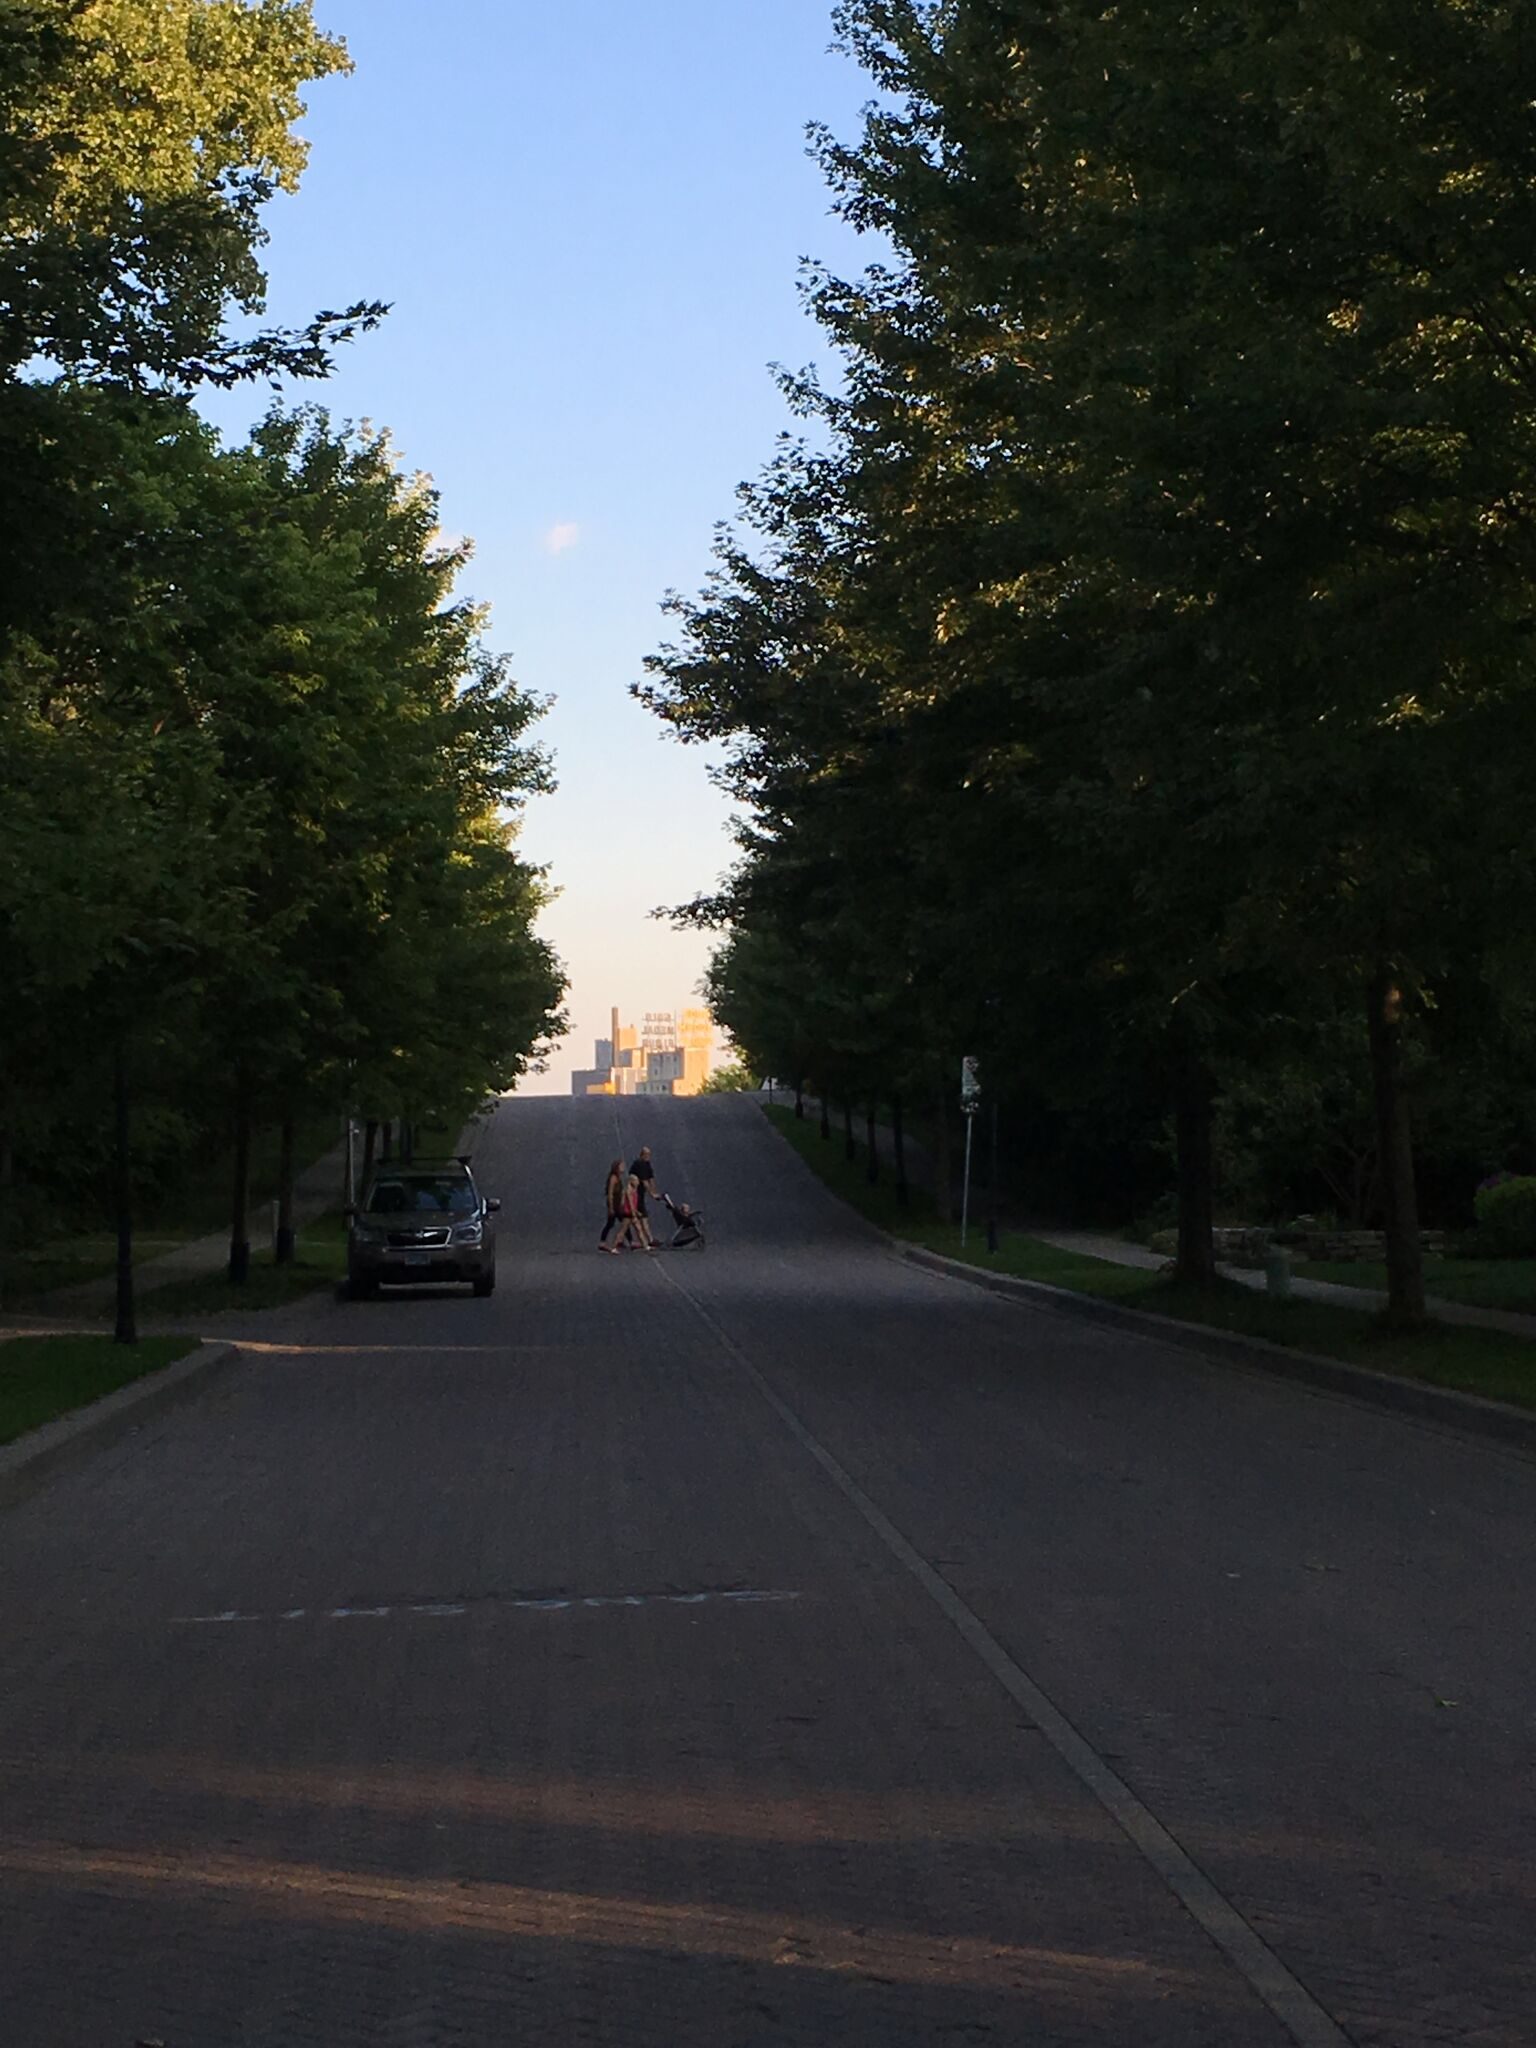 I liked this view of the Gold Medal Flour sign looking down a quiet residential street on Nicollet Island.